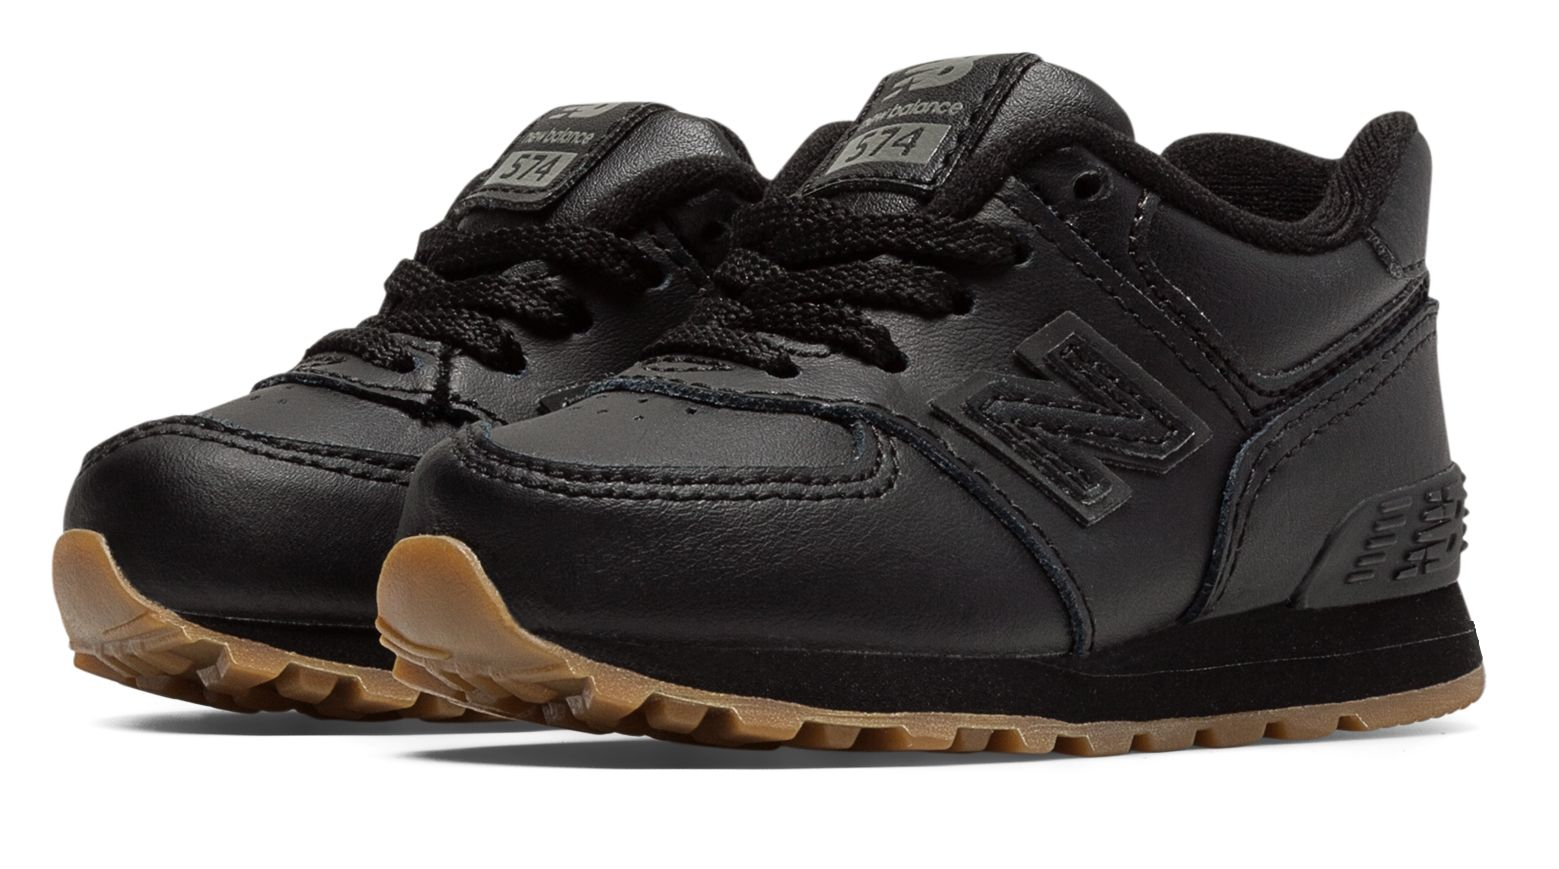 Lyst - New Balance 574 Leather in Black for Men